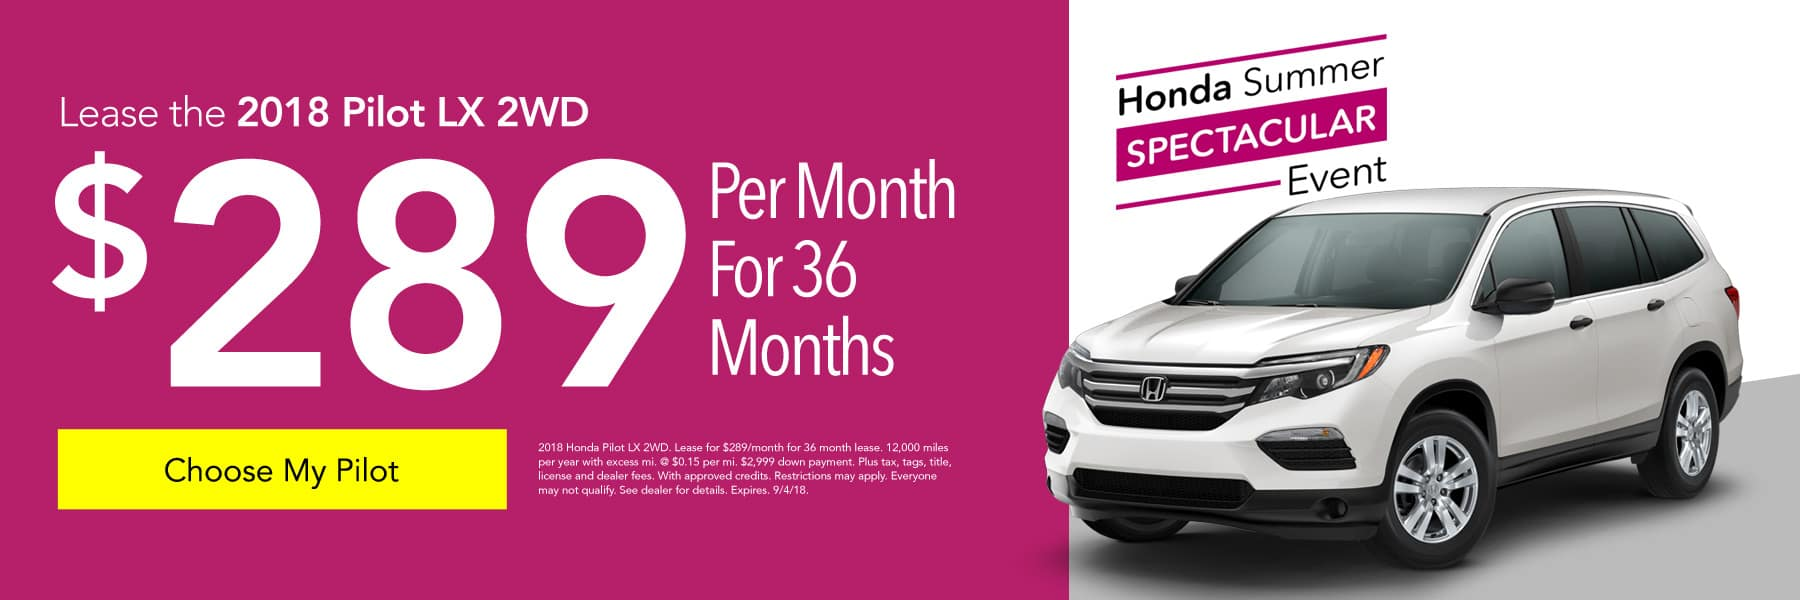 Lease the 2018 Honda Pilot LX 2WD for $289/month for 36 months - Choose My Pilot